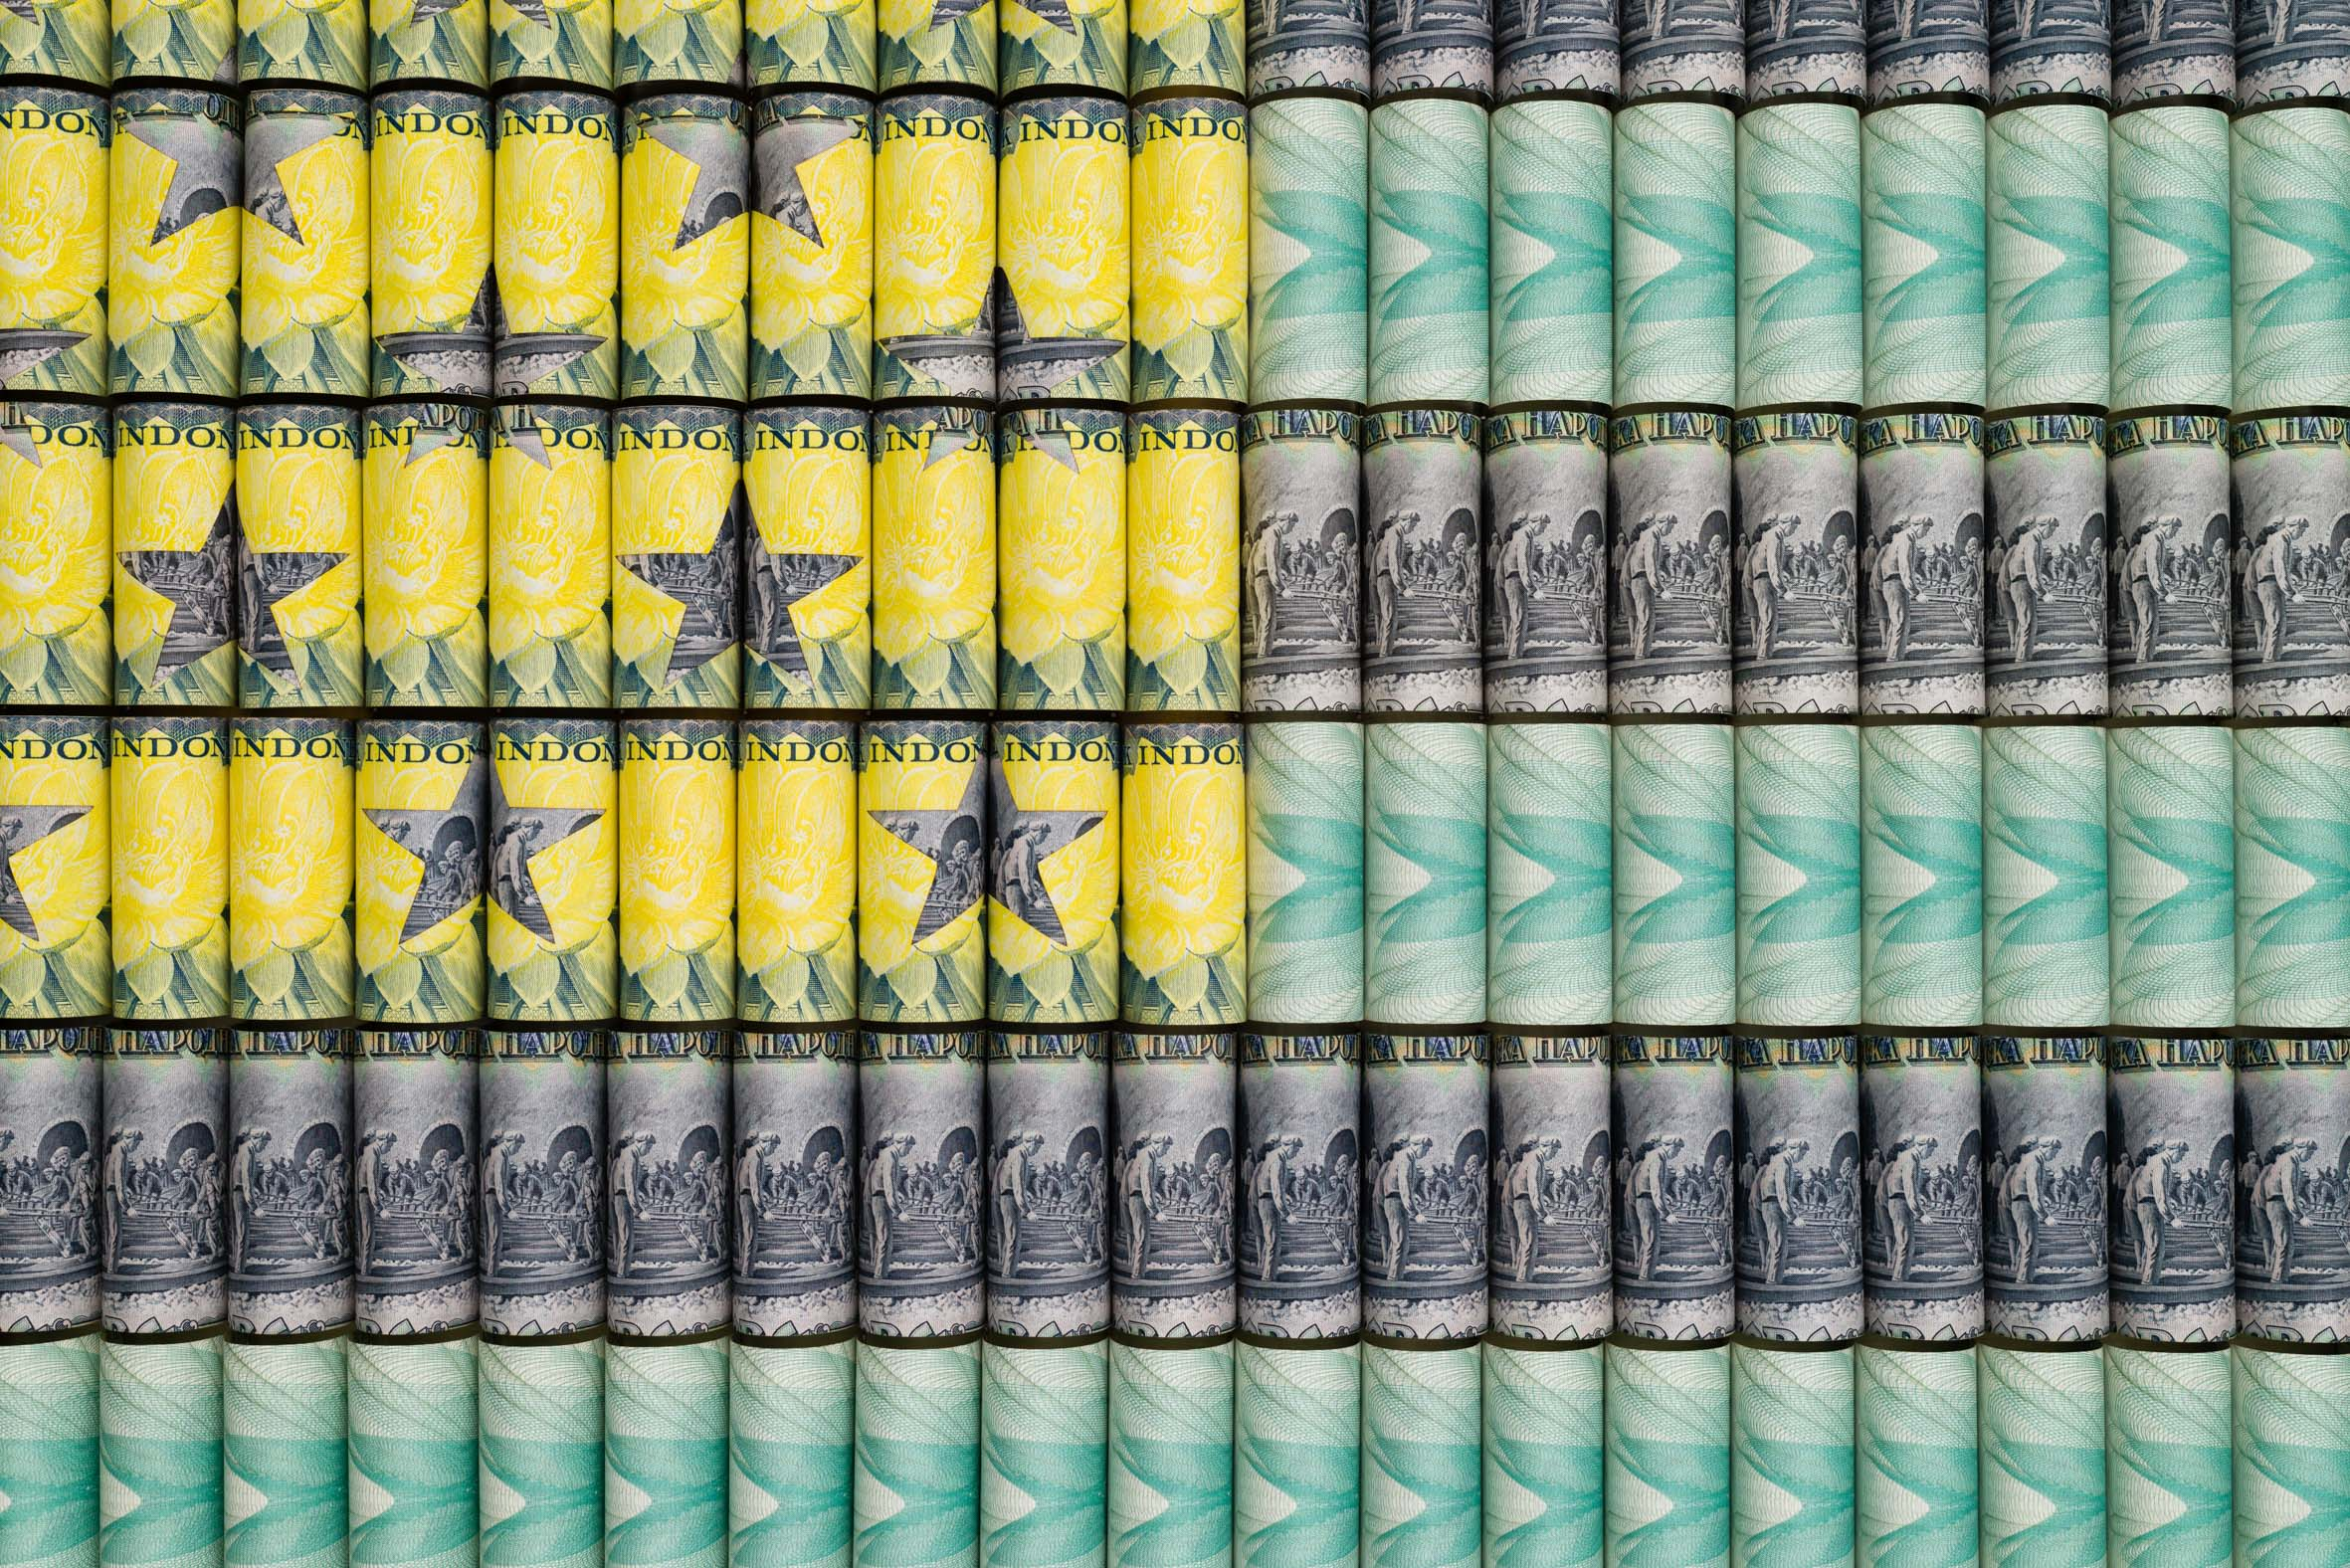 Santiago Montoya,  US Flag (II) , Paper money mounted on stainless steel, 77 x 135.5 cm (detail). Courtesy Halcyon Gallery, copyright Santiago Montoya.